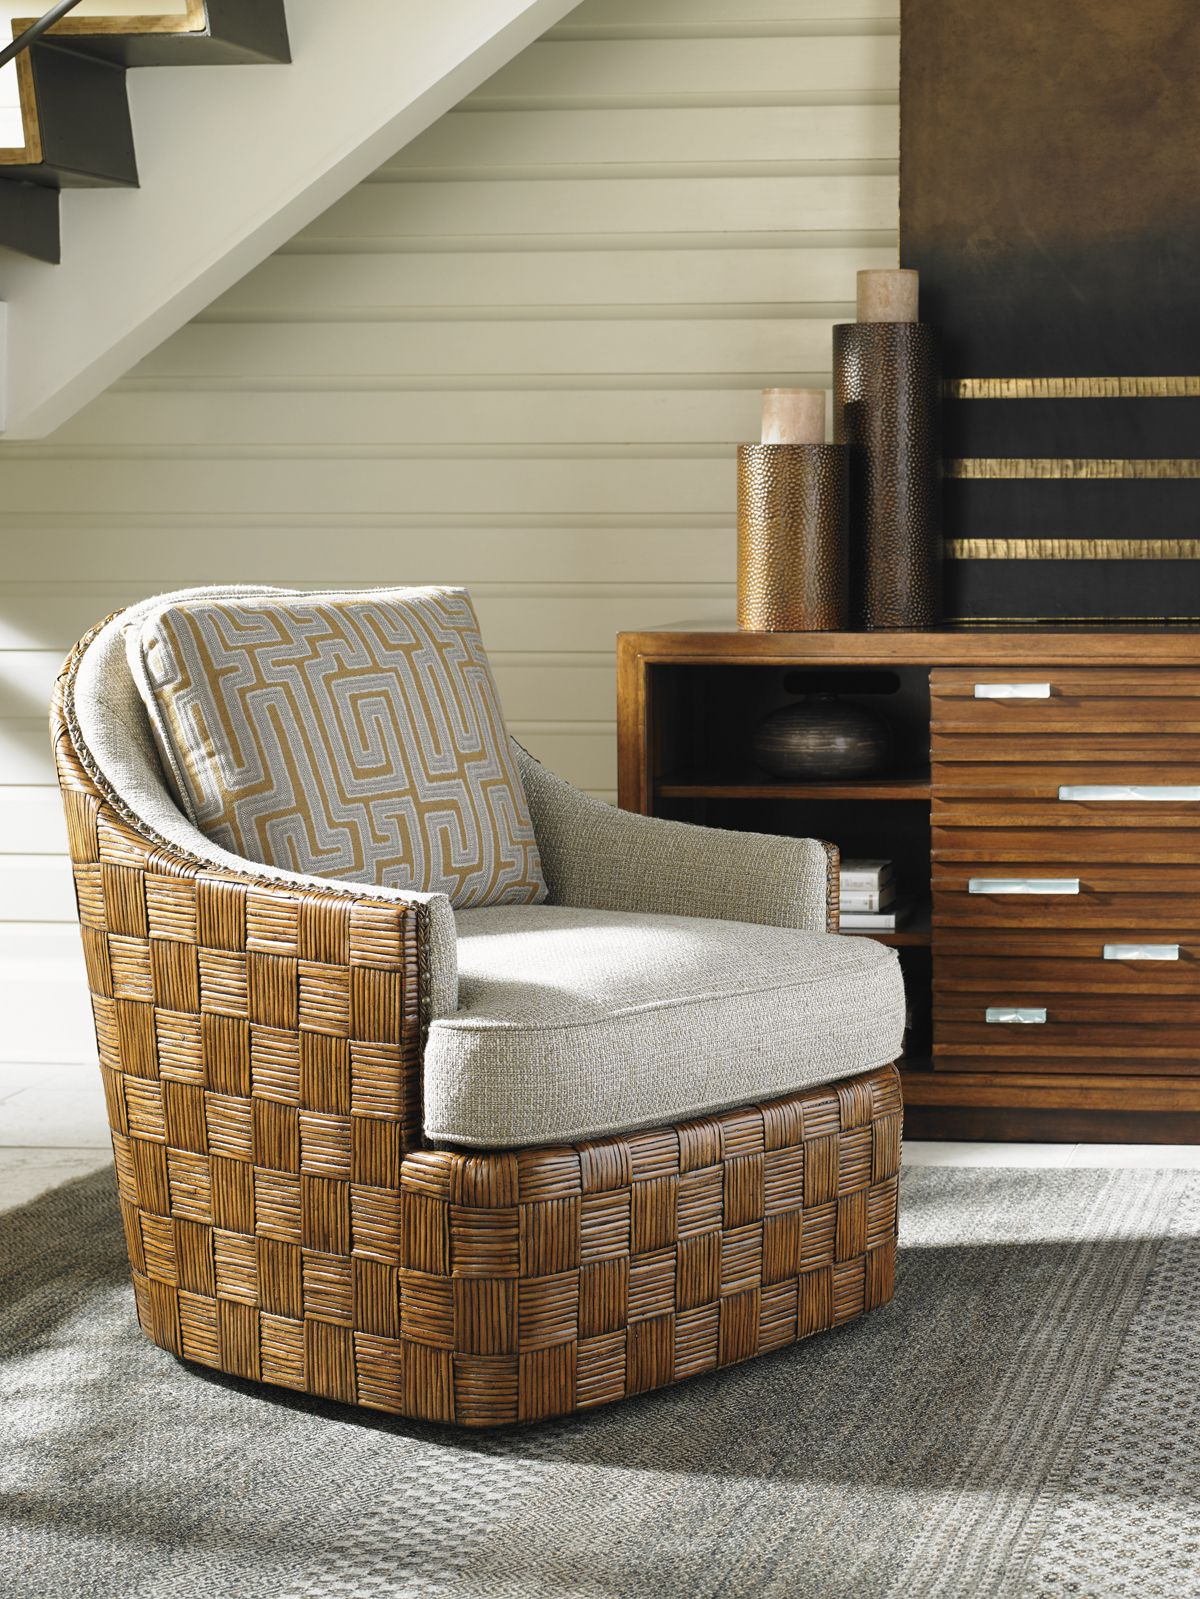 Tommy Bahama Swivel Chair With Woven Rattan Parquet Design